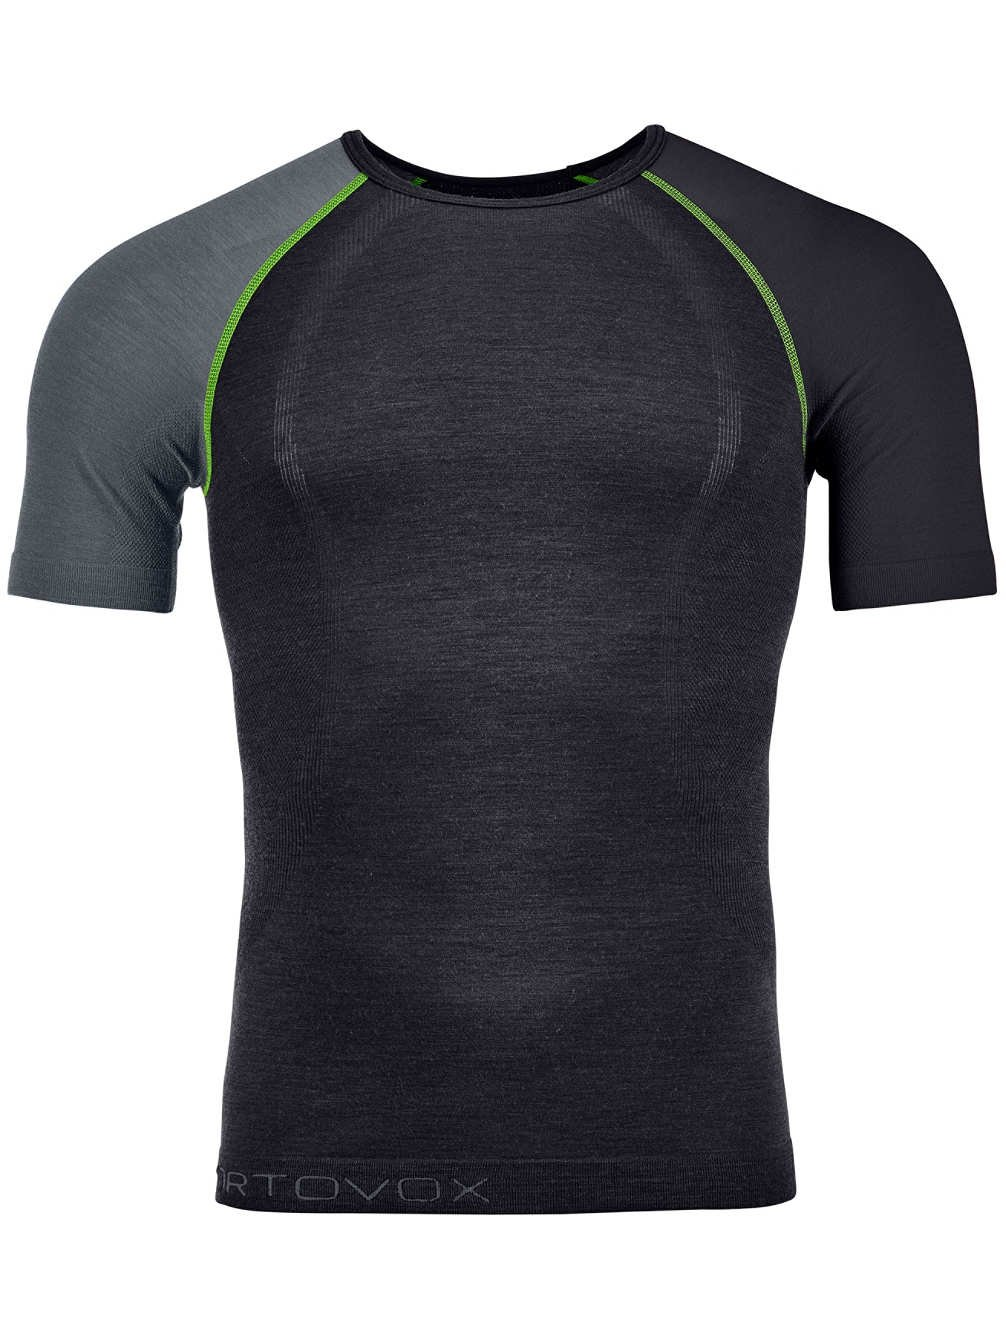 Ortovox Herren 120 Comp Light Shirt